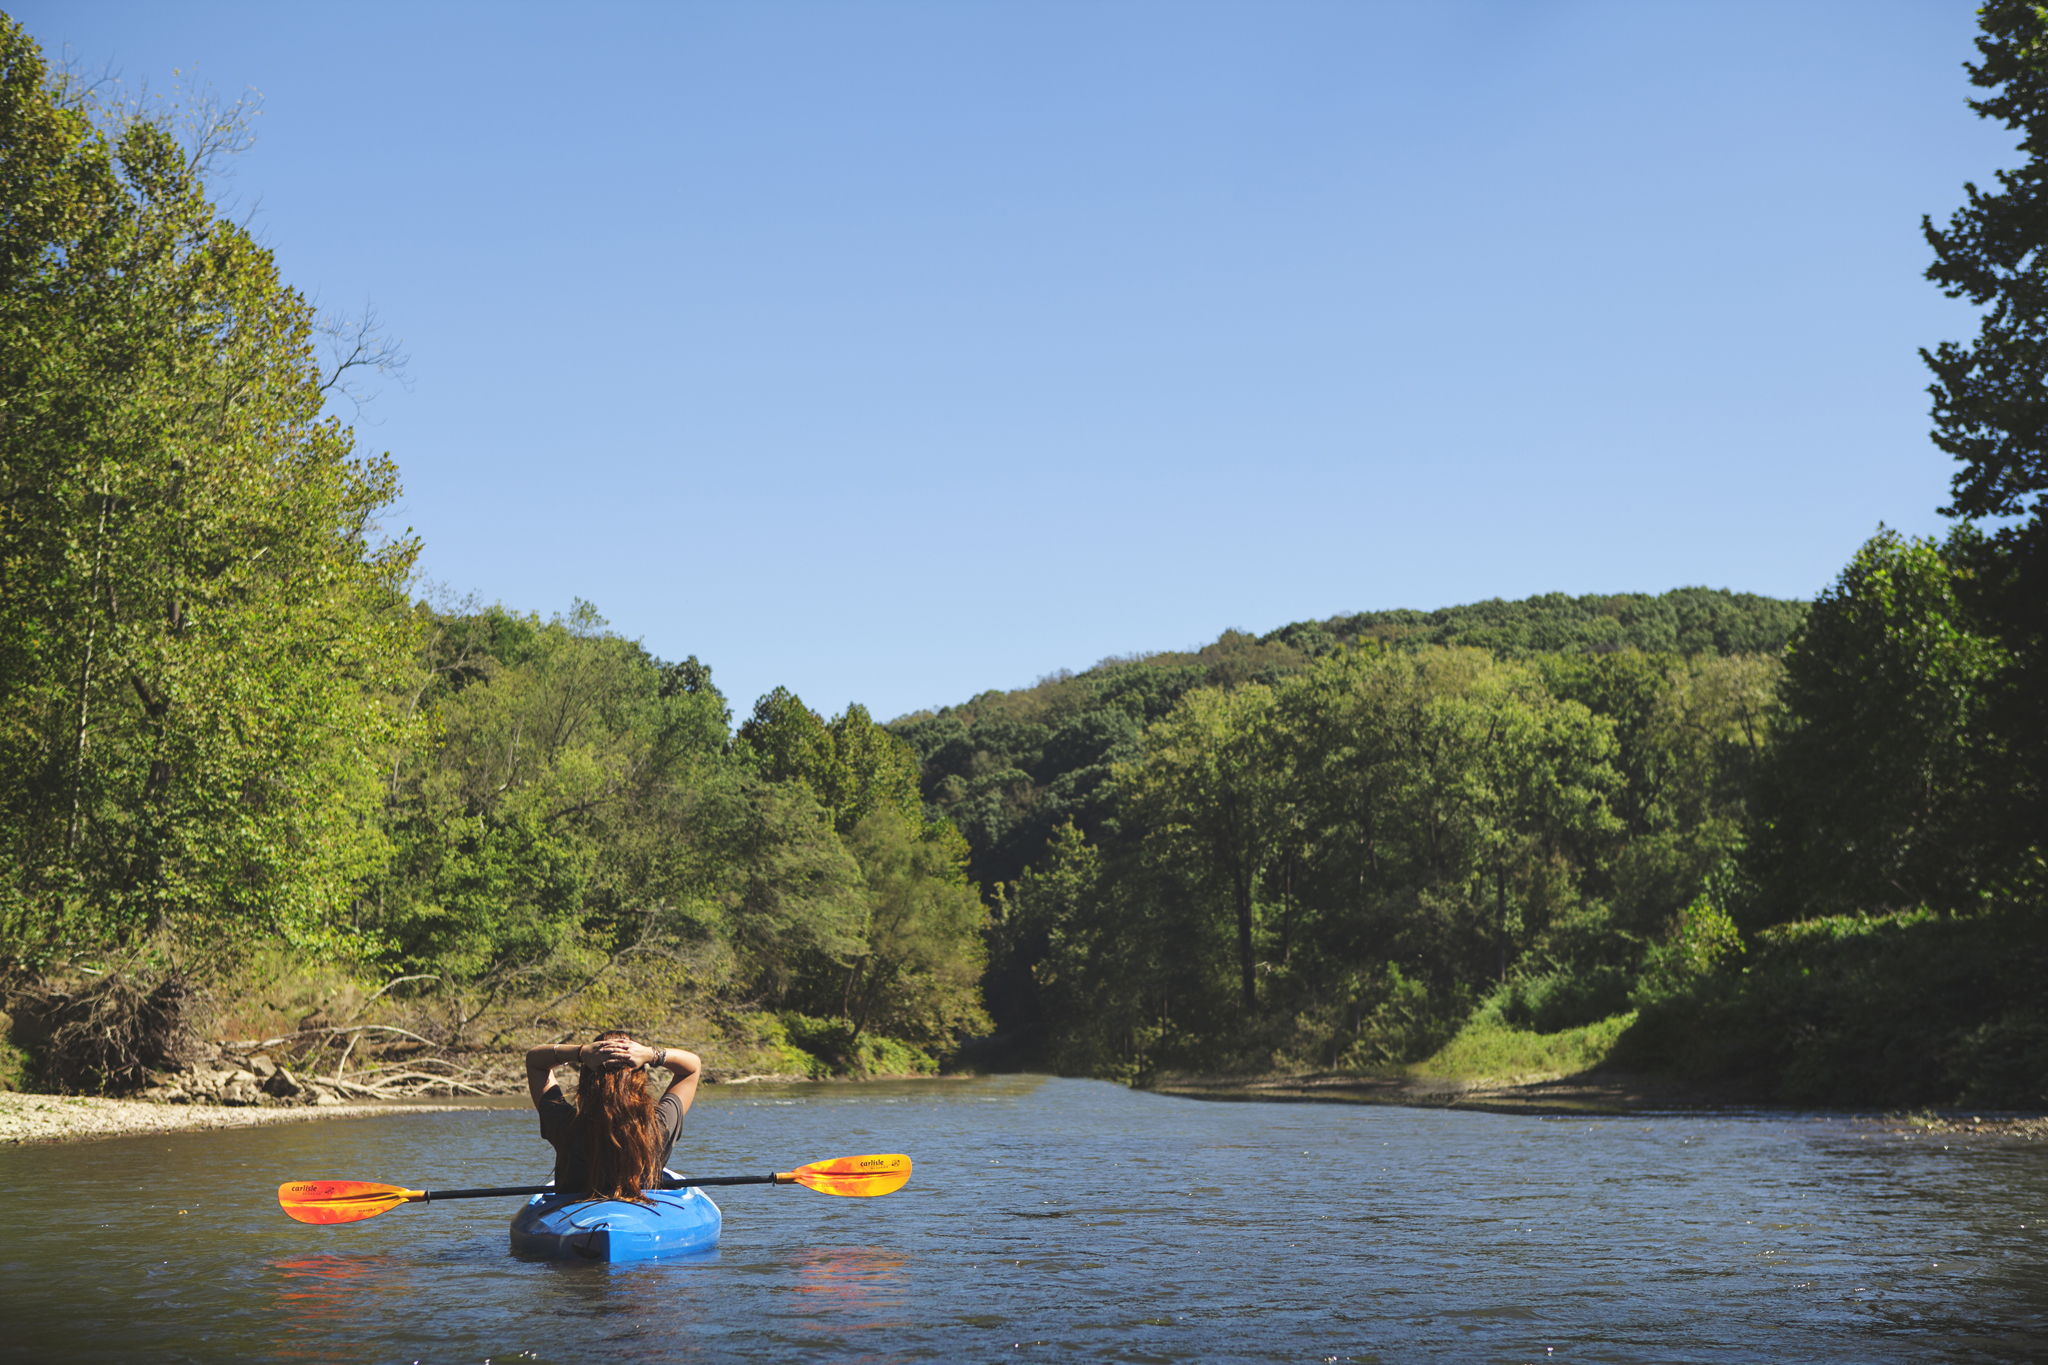 Licking_River_Kayak_theGreatOutdoors_0108.jpg